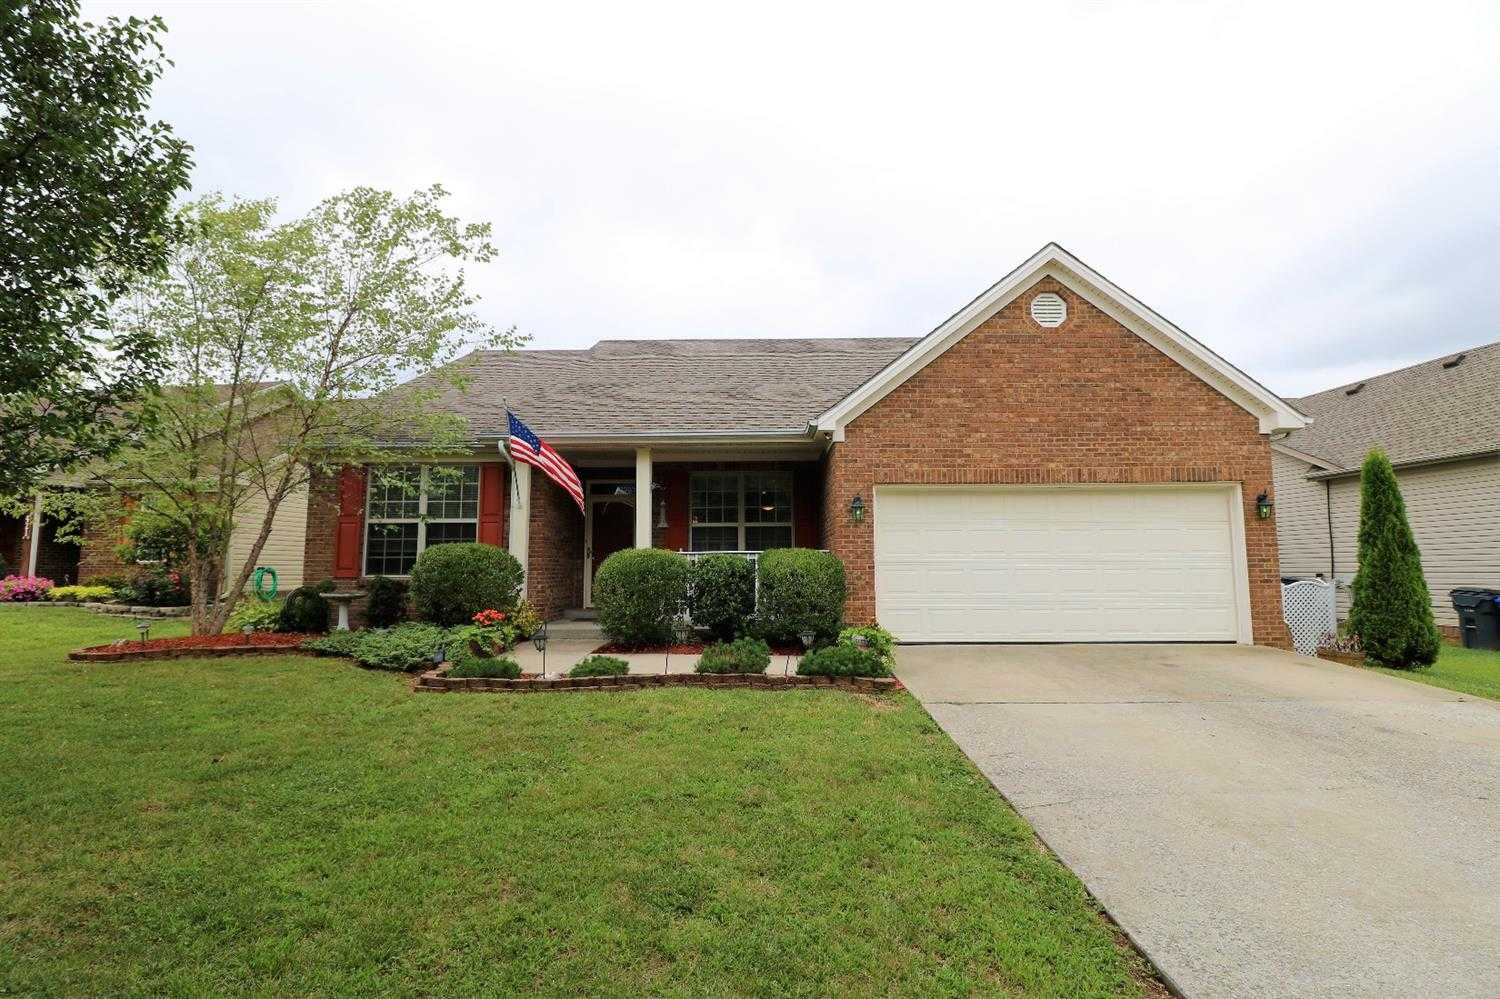 $239,900 - 3Br/2Ba -  for Sale in Pinnacle, Lexington